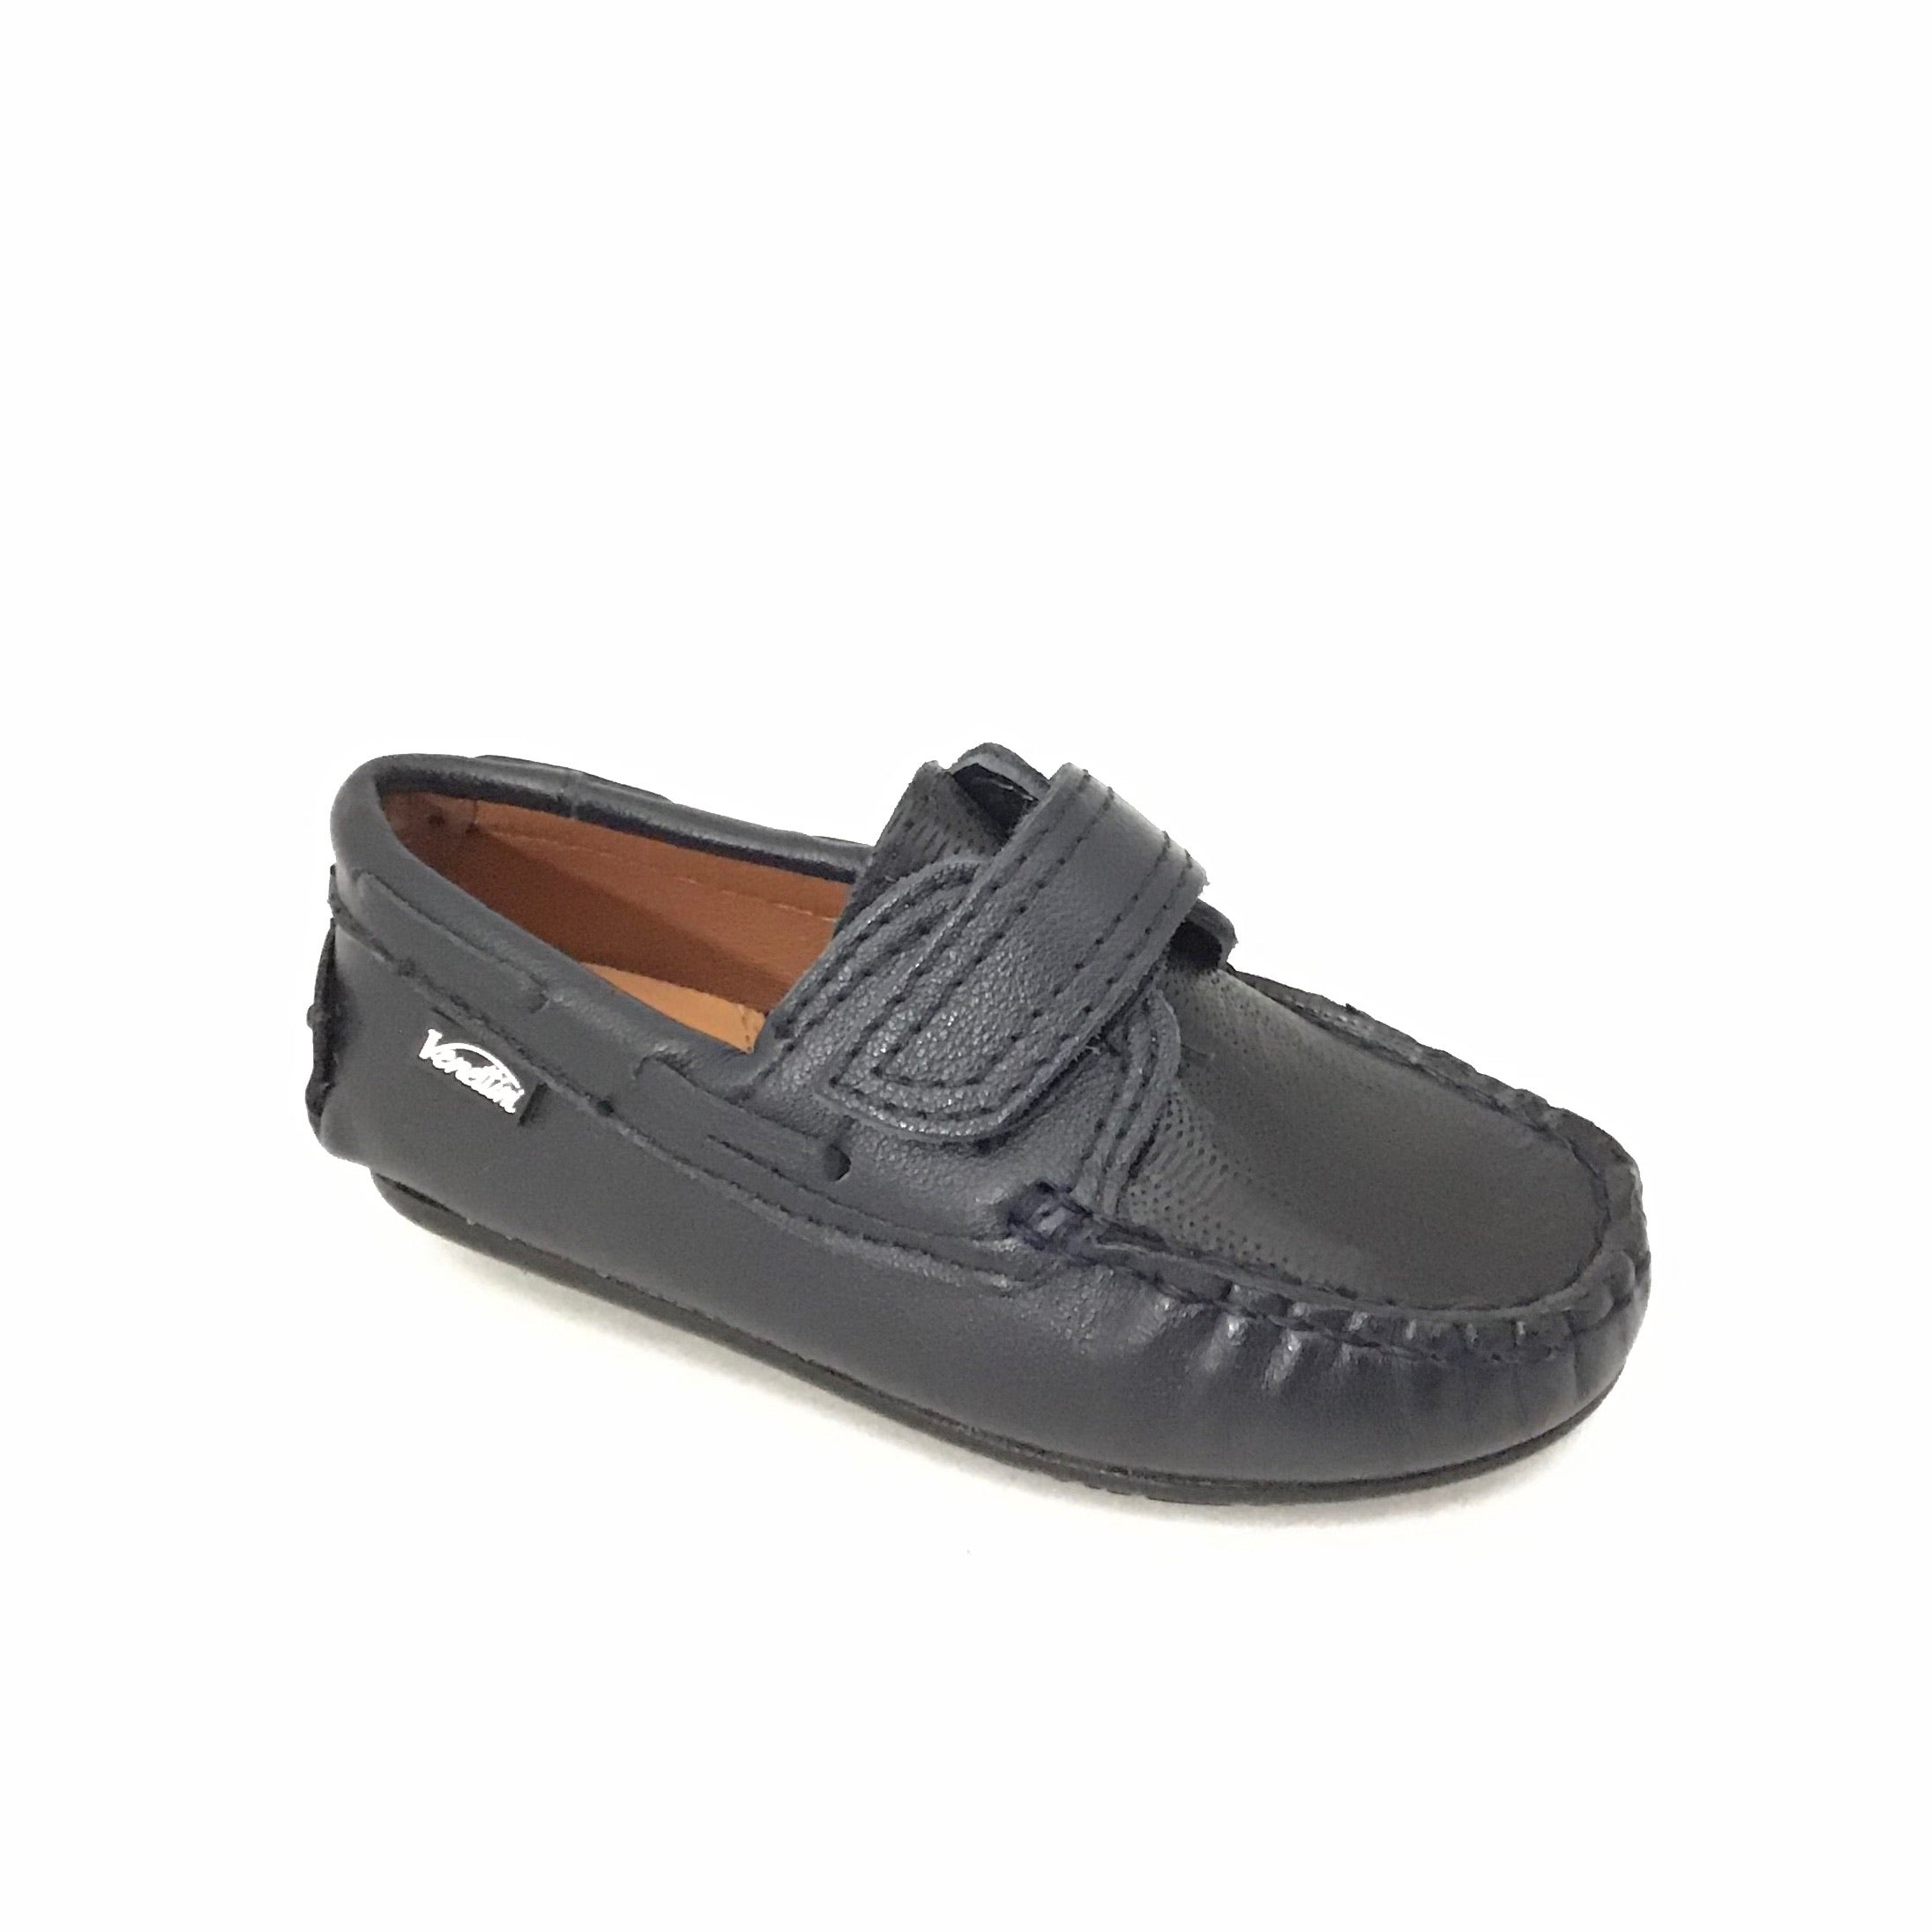 Venettini Velcro Navy Loafer